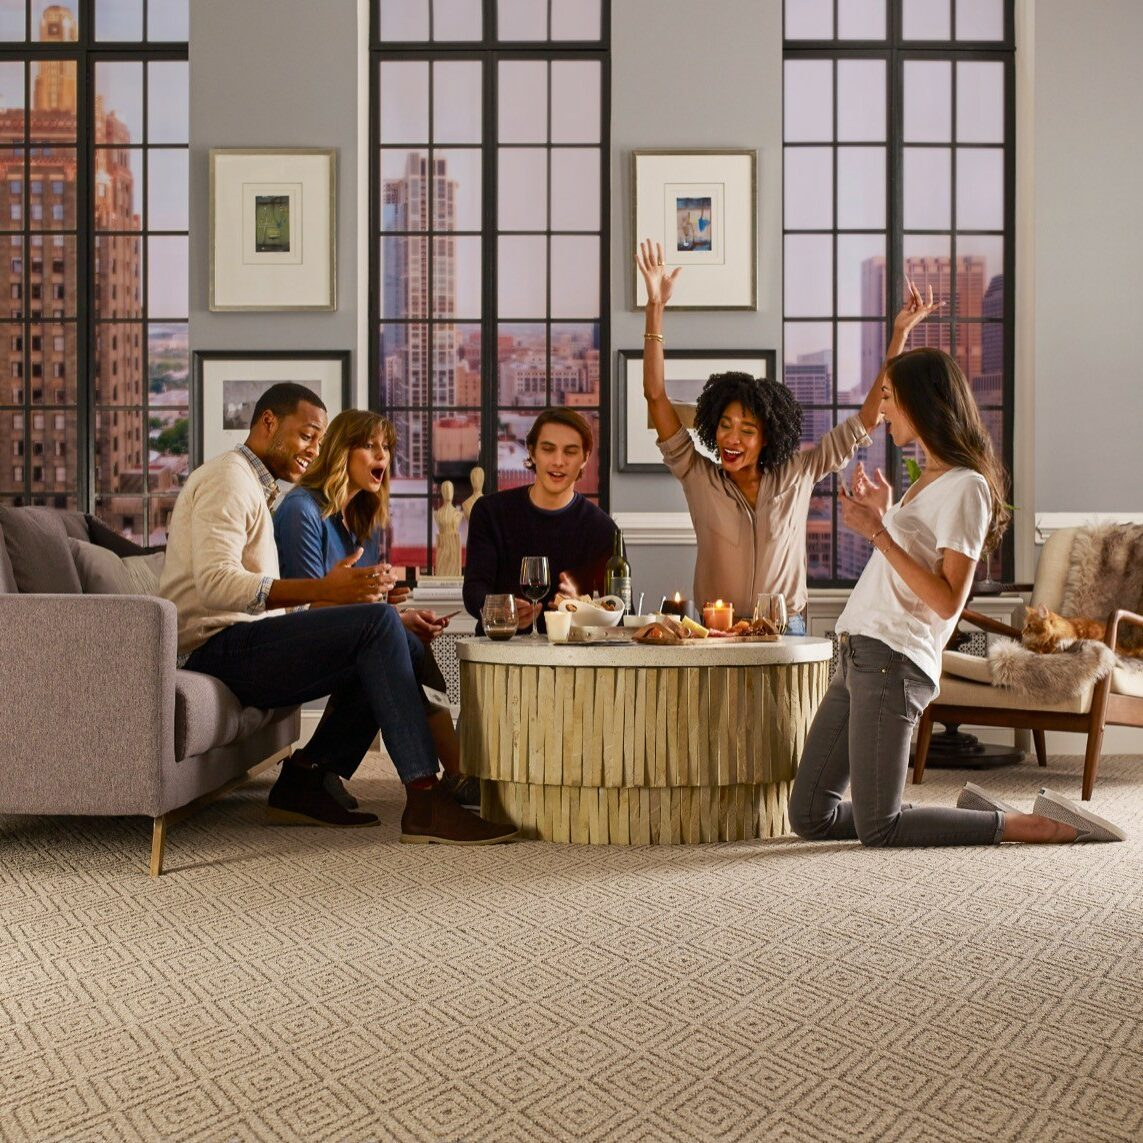 Friends hanging out in living room | Flooring 101